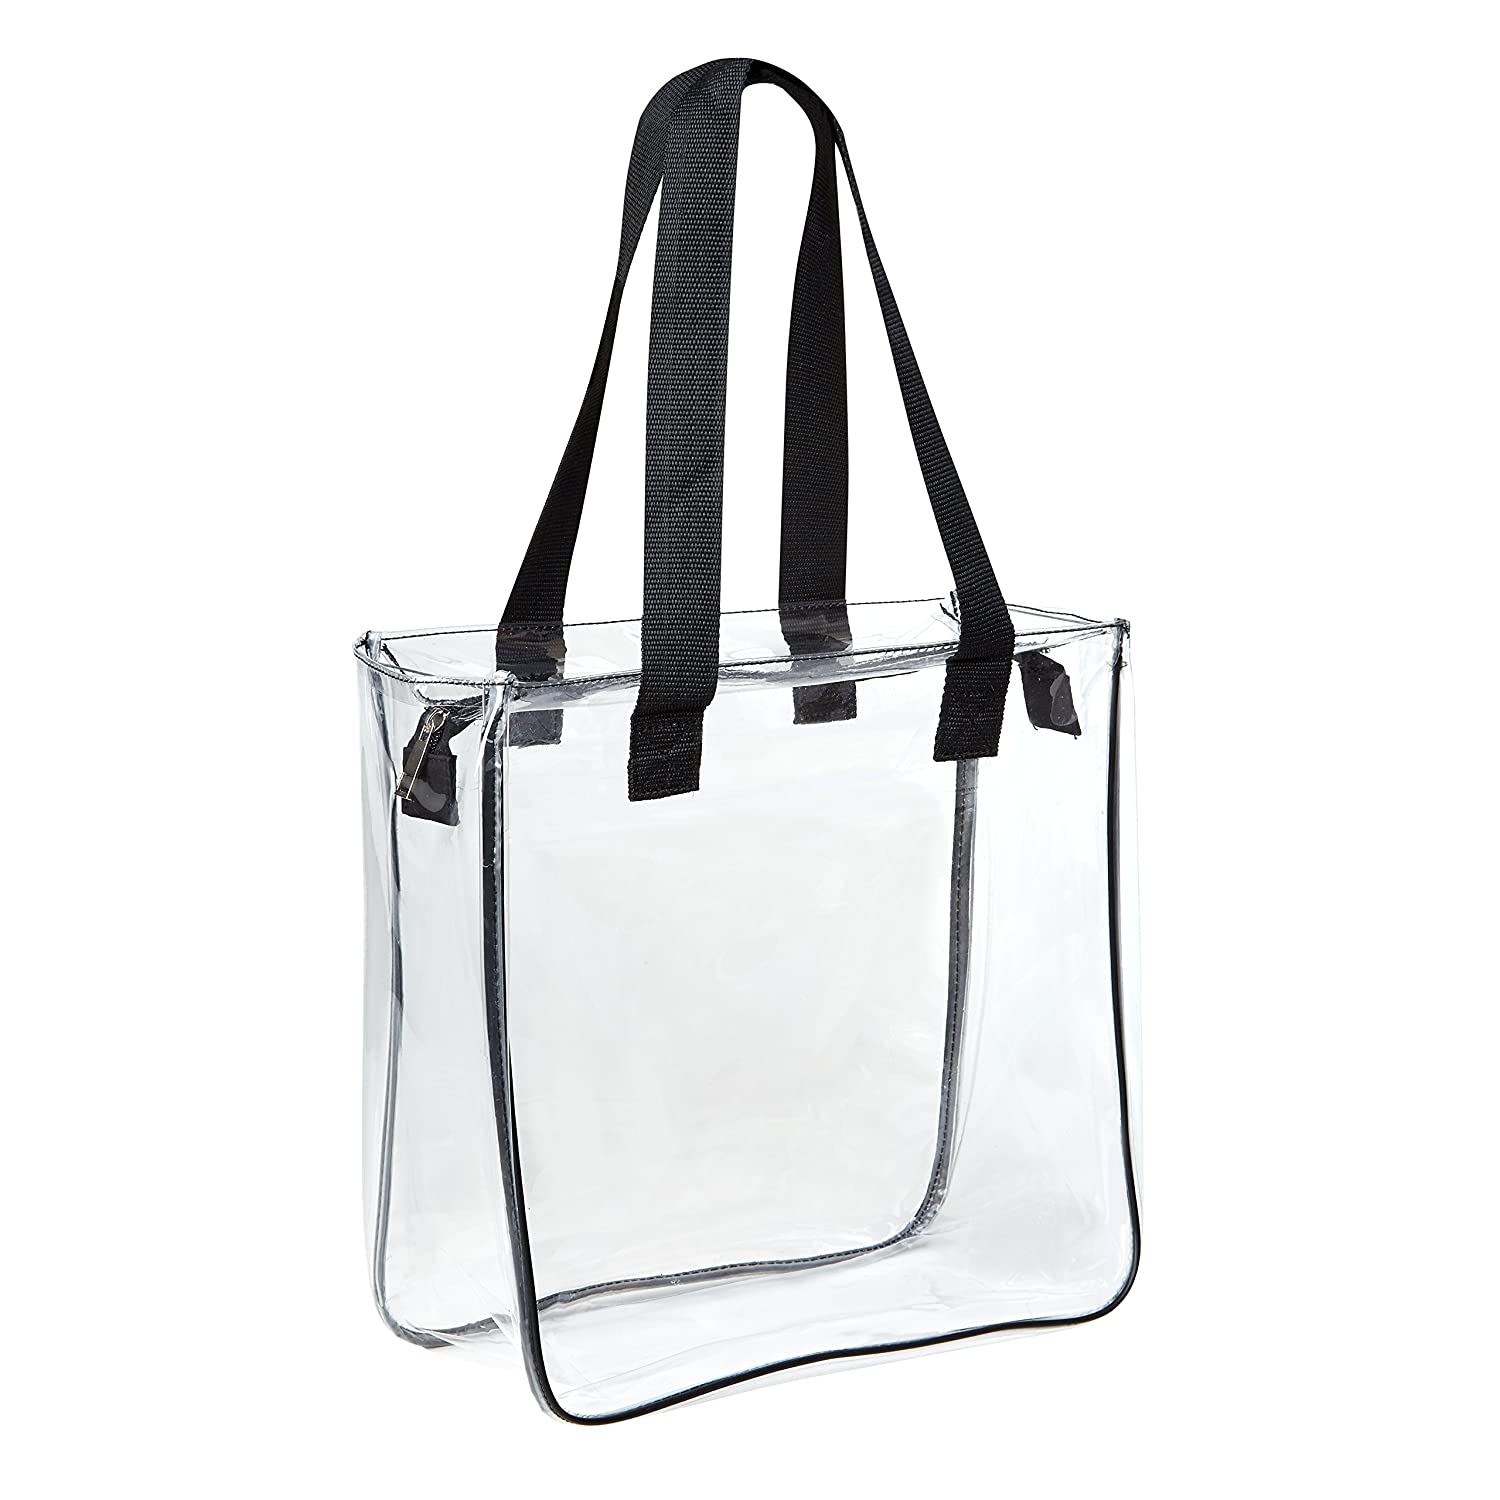 6533060d8a74 Amazon.com  Clear 12 x 12 x 6 NFL Stadium Approved Tote Bag with Black  Handles  Clothing